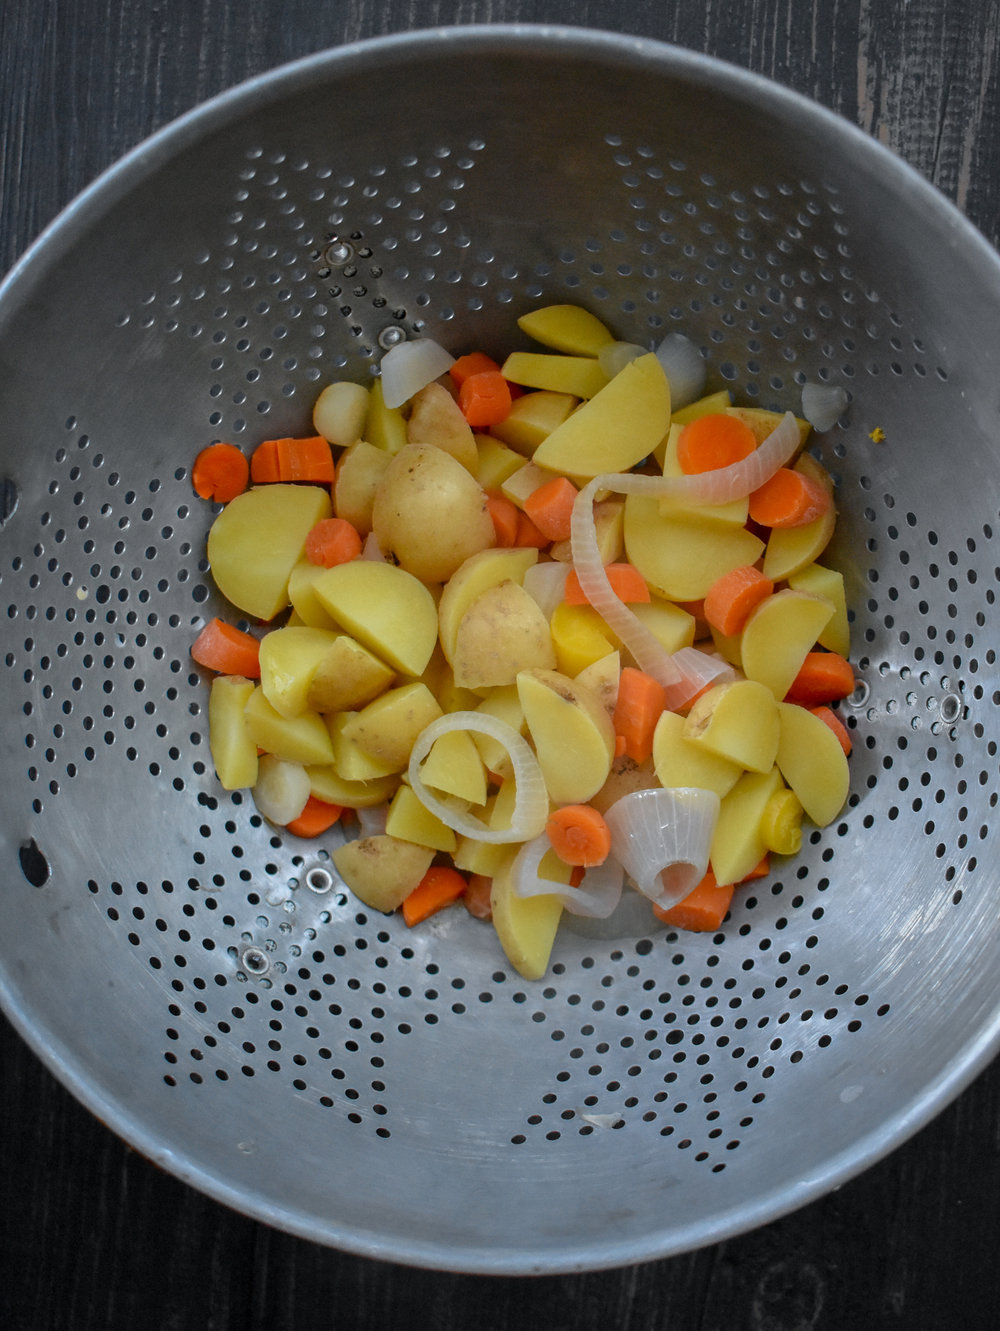 1. Place potatoes, carrots, and shallots into pot of 6 cups of boiling water. Boil for 10 minutes then drain and add to a food processor.